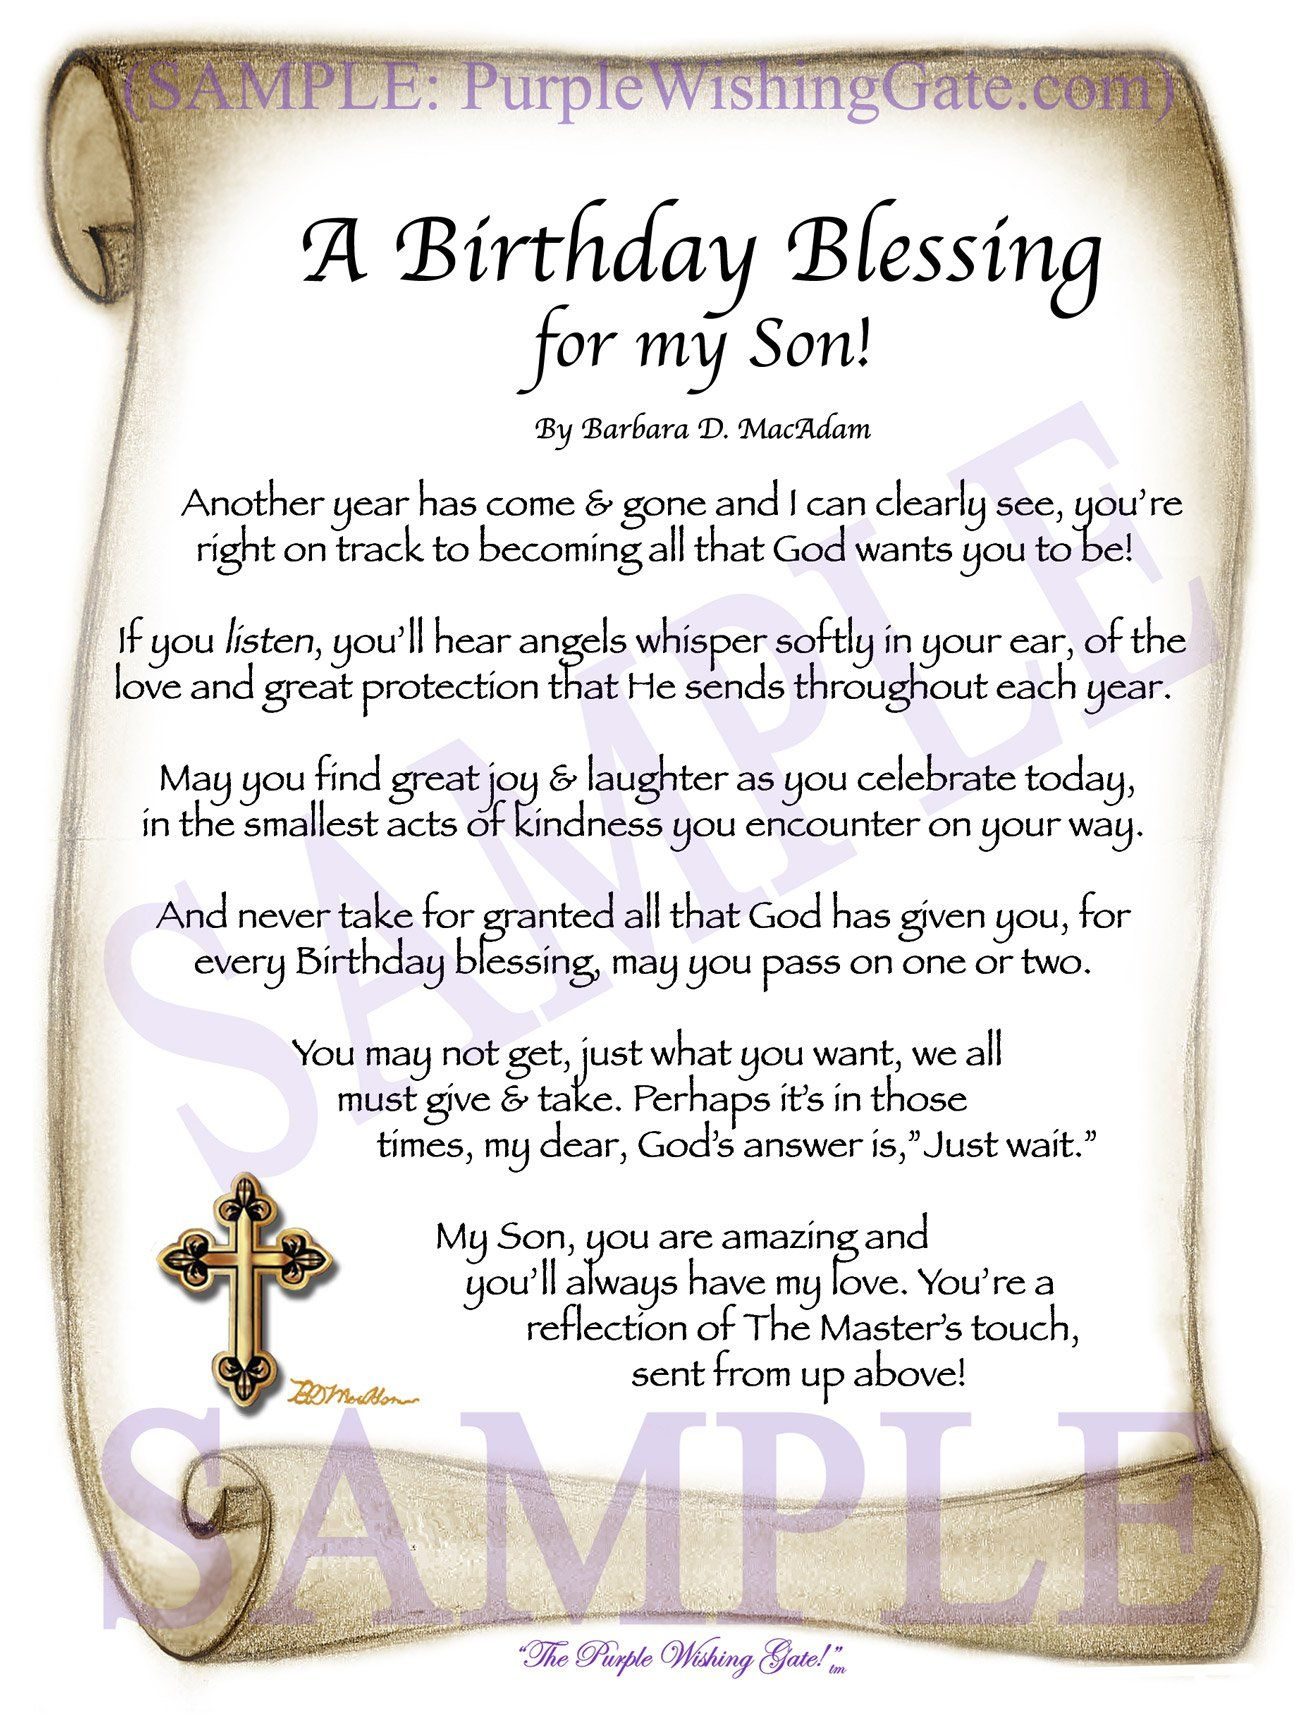 A birthday blessing for my son birthday blessings